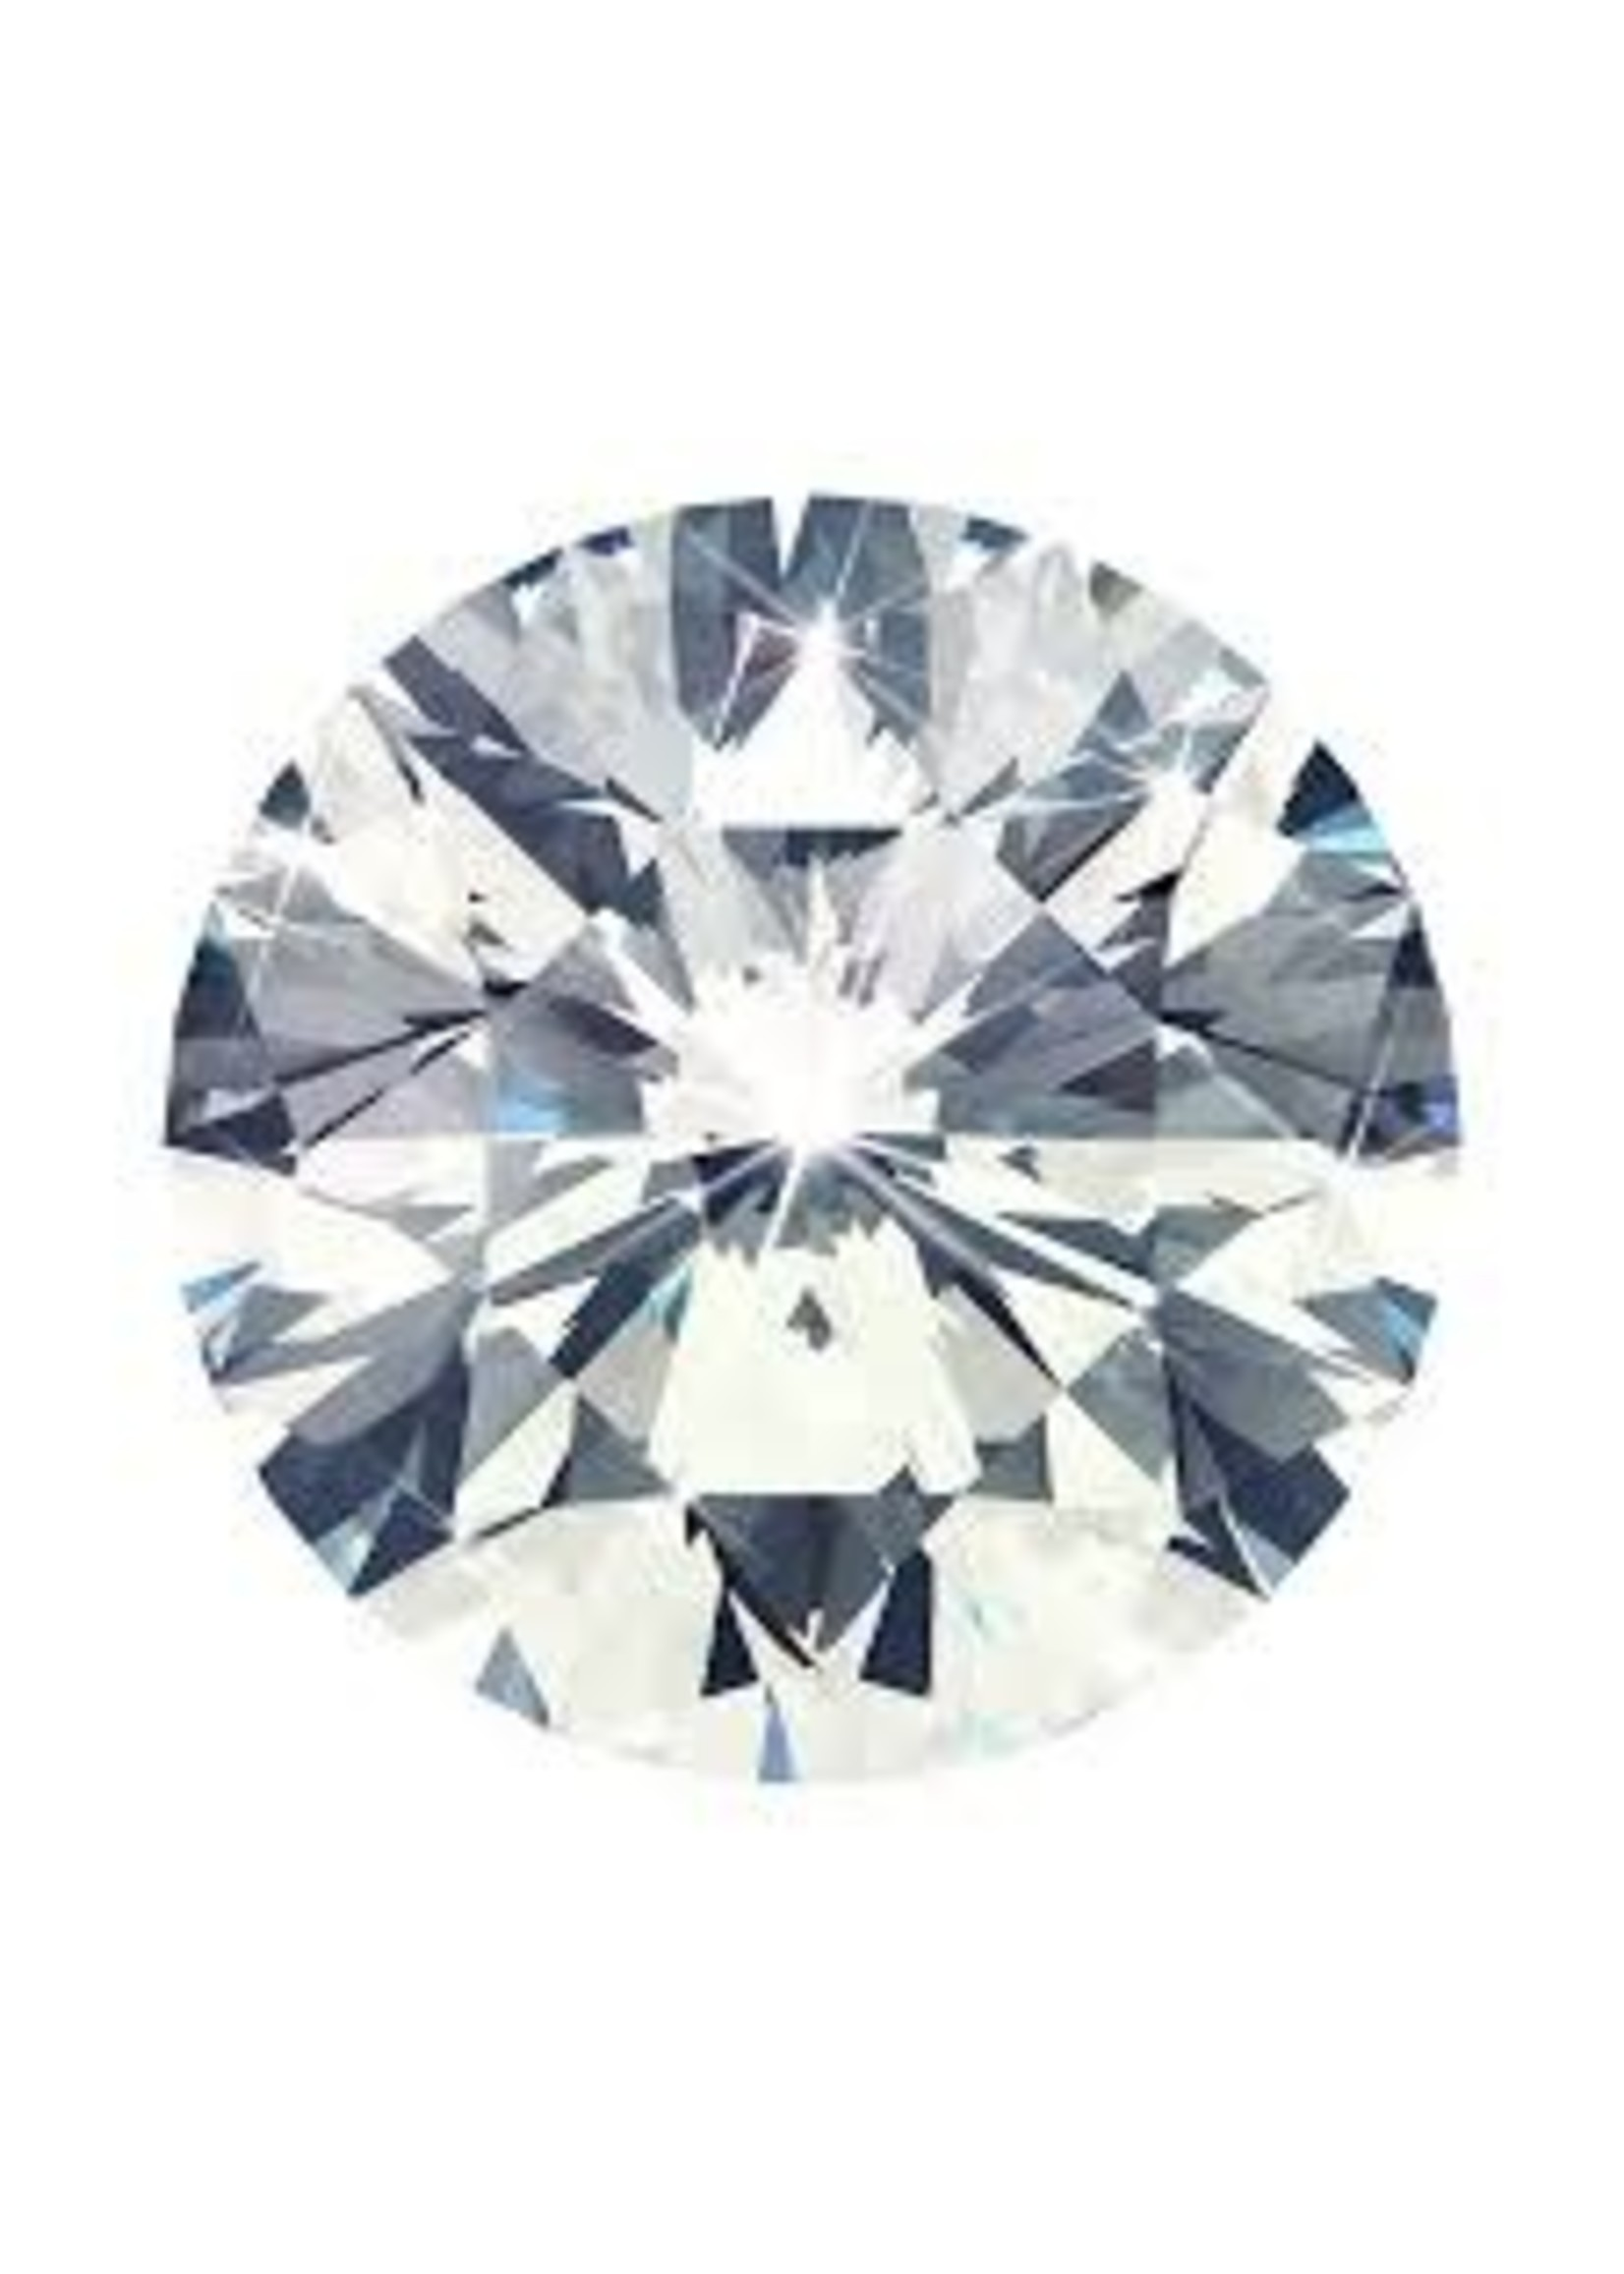 1.02 ROUND BRILLIANT CUT DIAMOND (SI-2/H/GOOD)